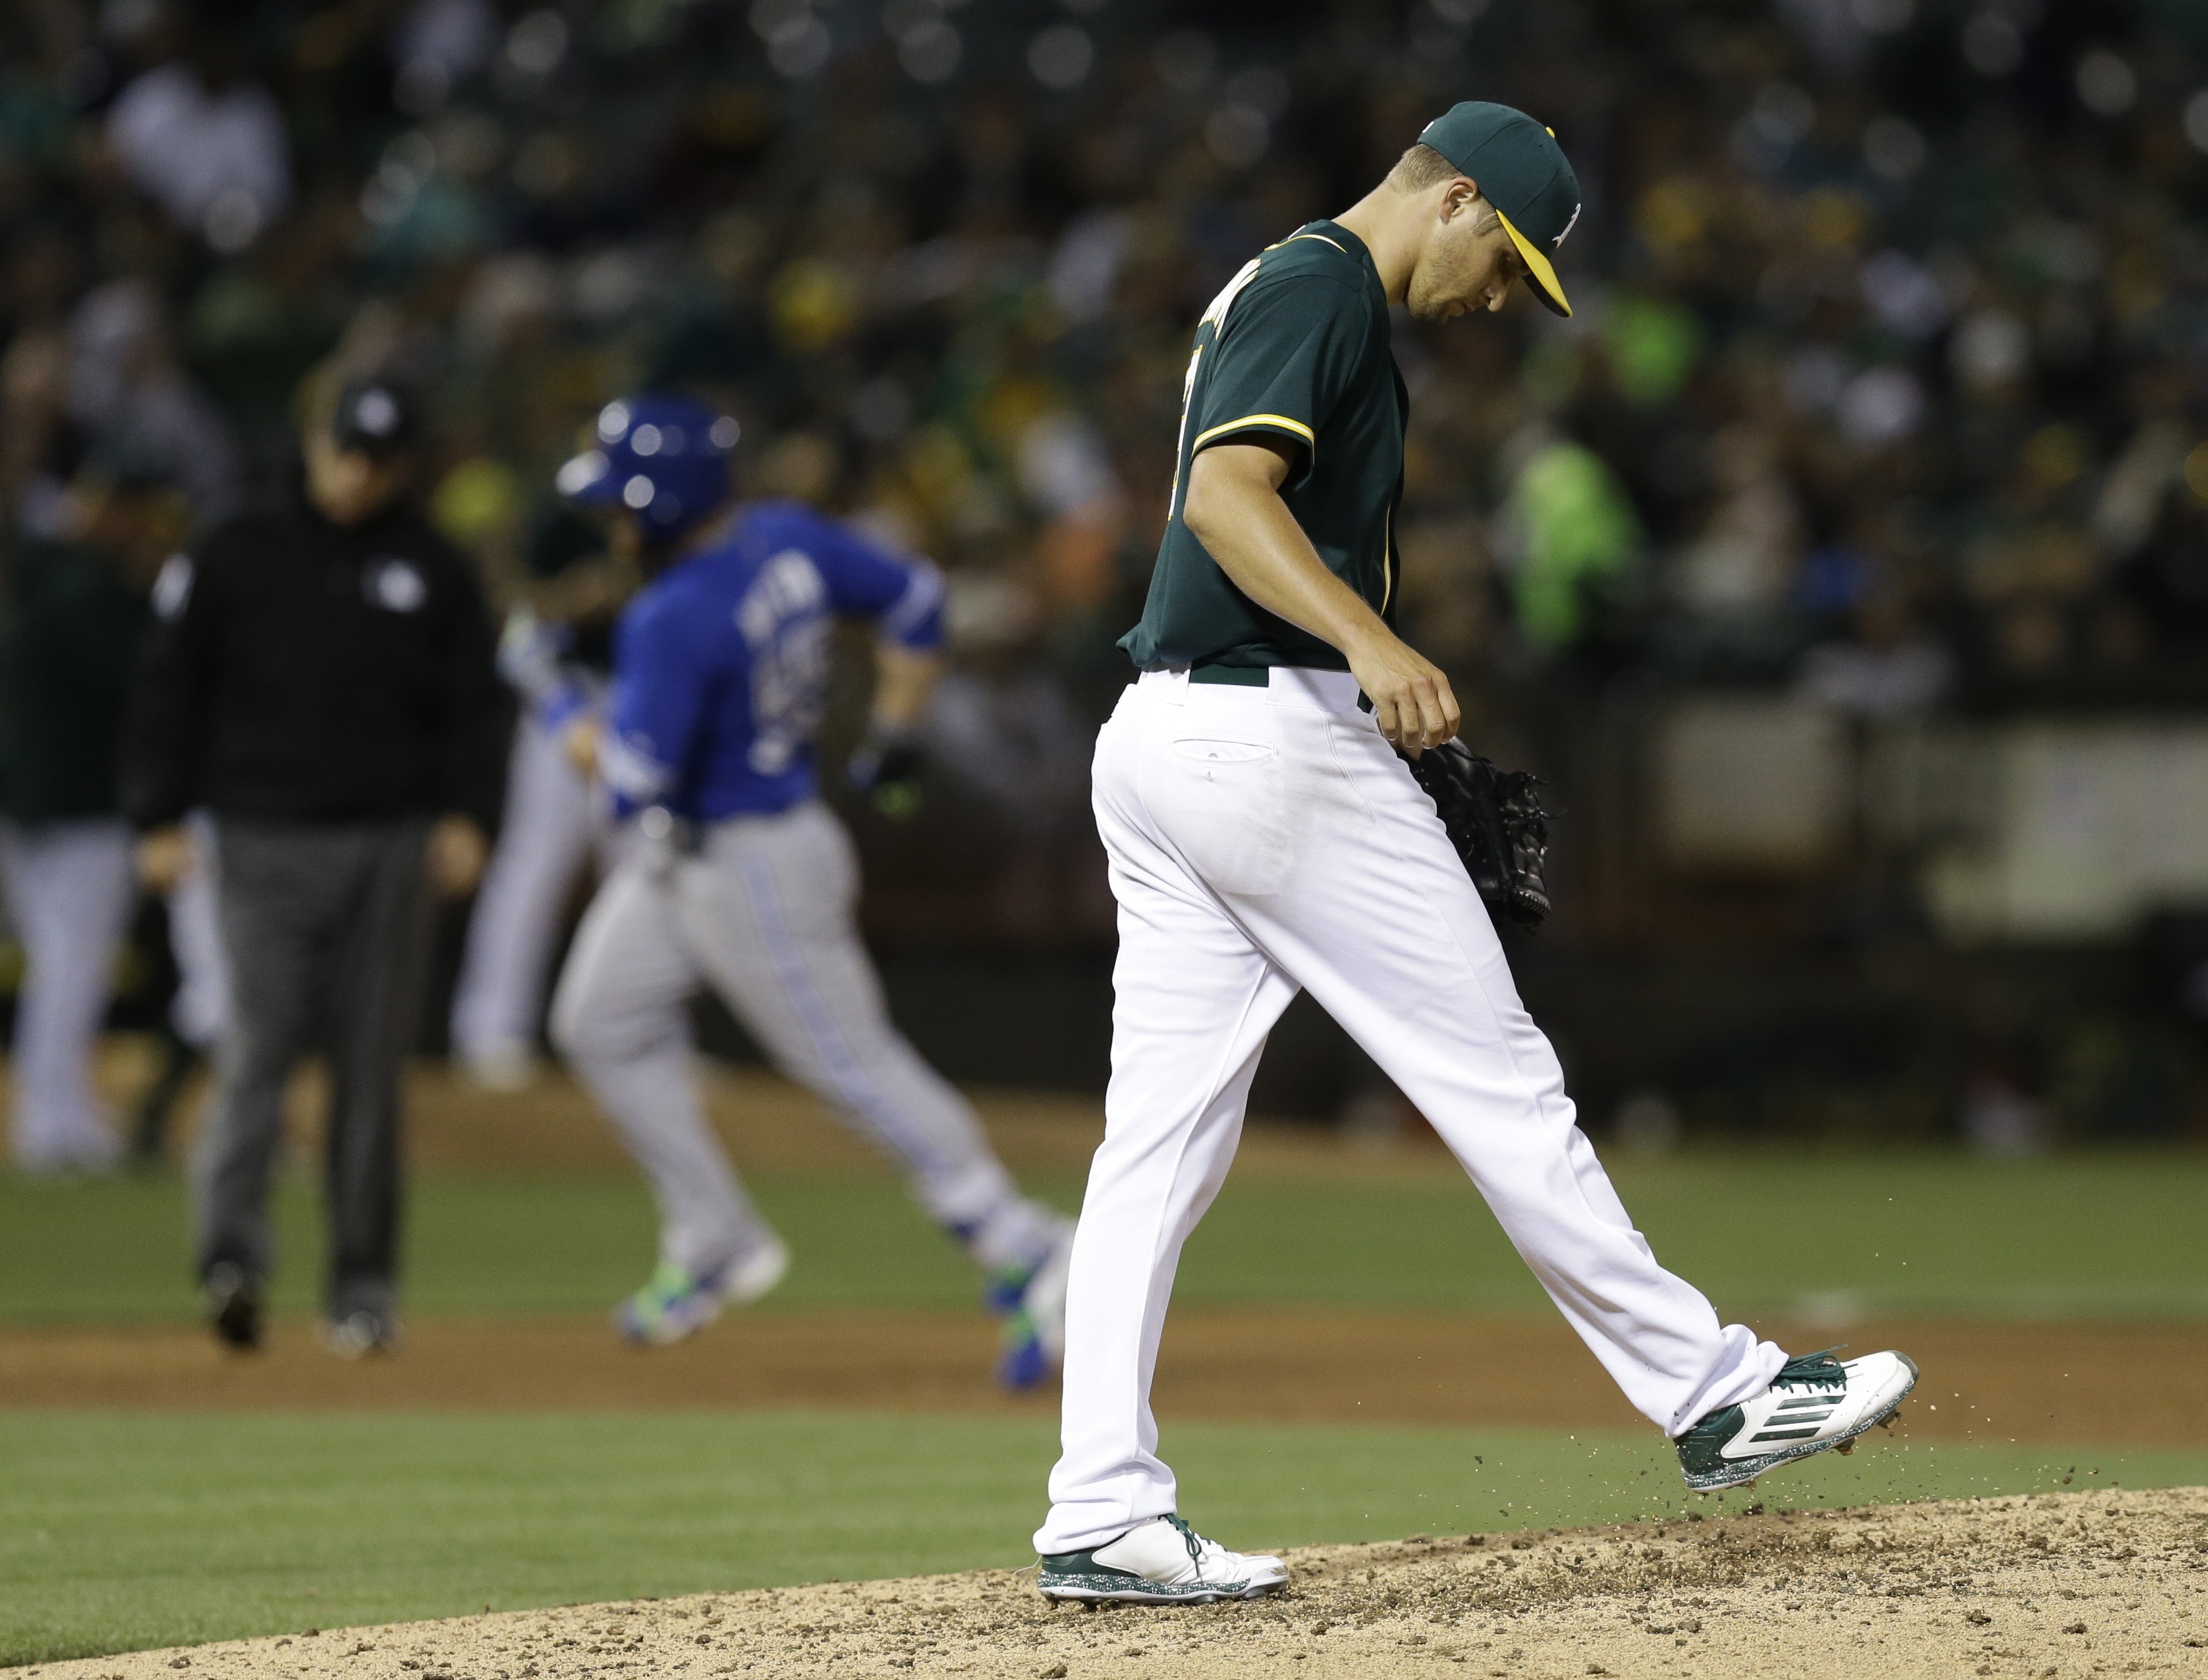 Oakland Athletics' Kendall Graveman kicks the mound after giving up a three-run home run to Toronto Blue Jays' Russell Martin during the sixth inning of a baseball game Tuesday, July 21, 2015, in Oakland, Calif. (AP Photo/Ben Margot)